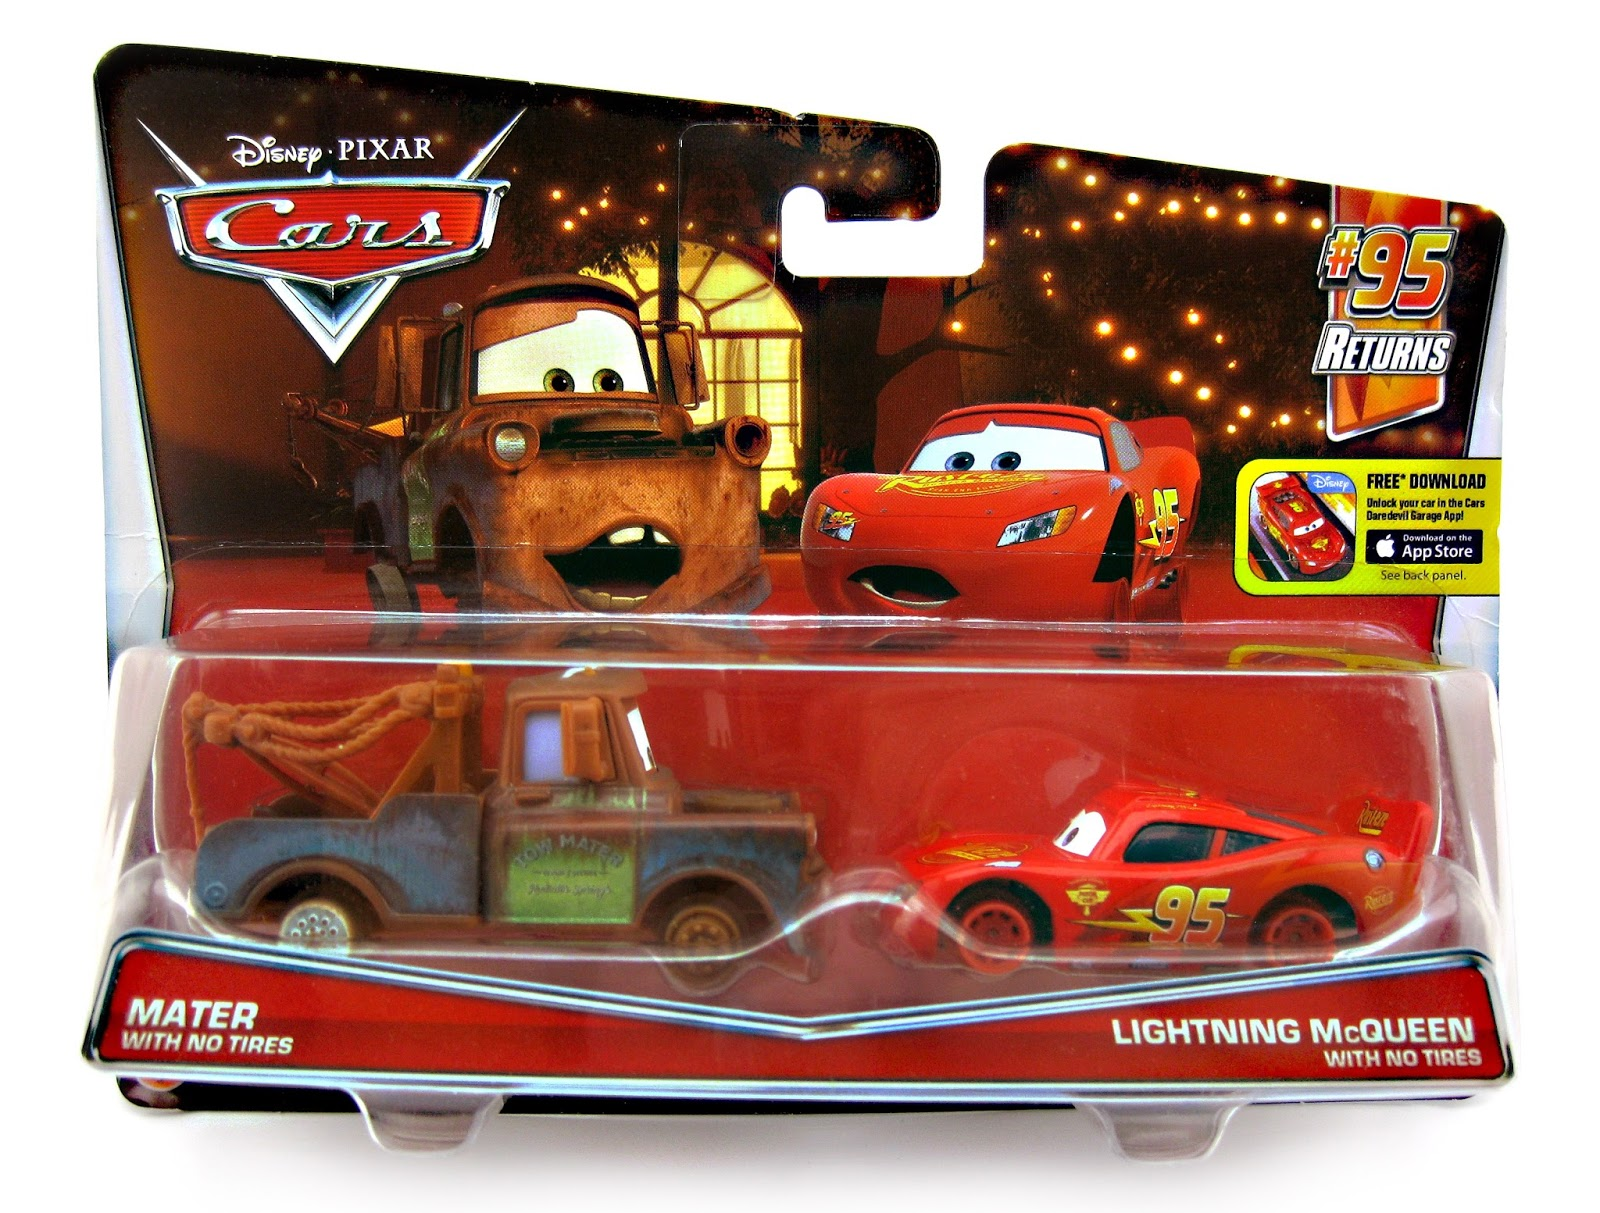 Dan The Pixar Fan Cars 2 Mater Lightning Mcqueen With No Tires 2 Pack